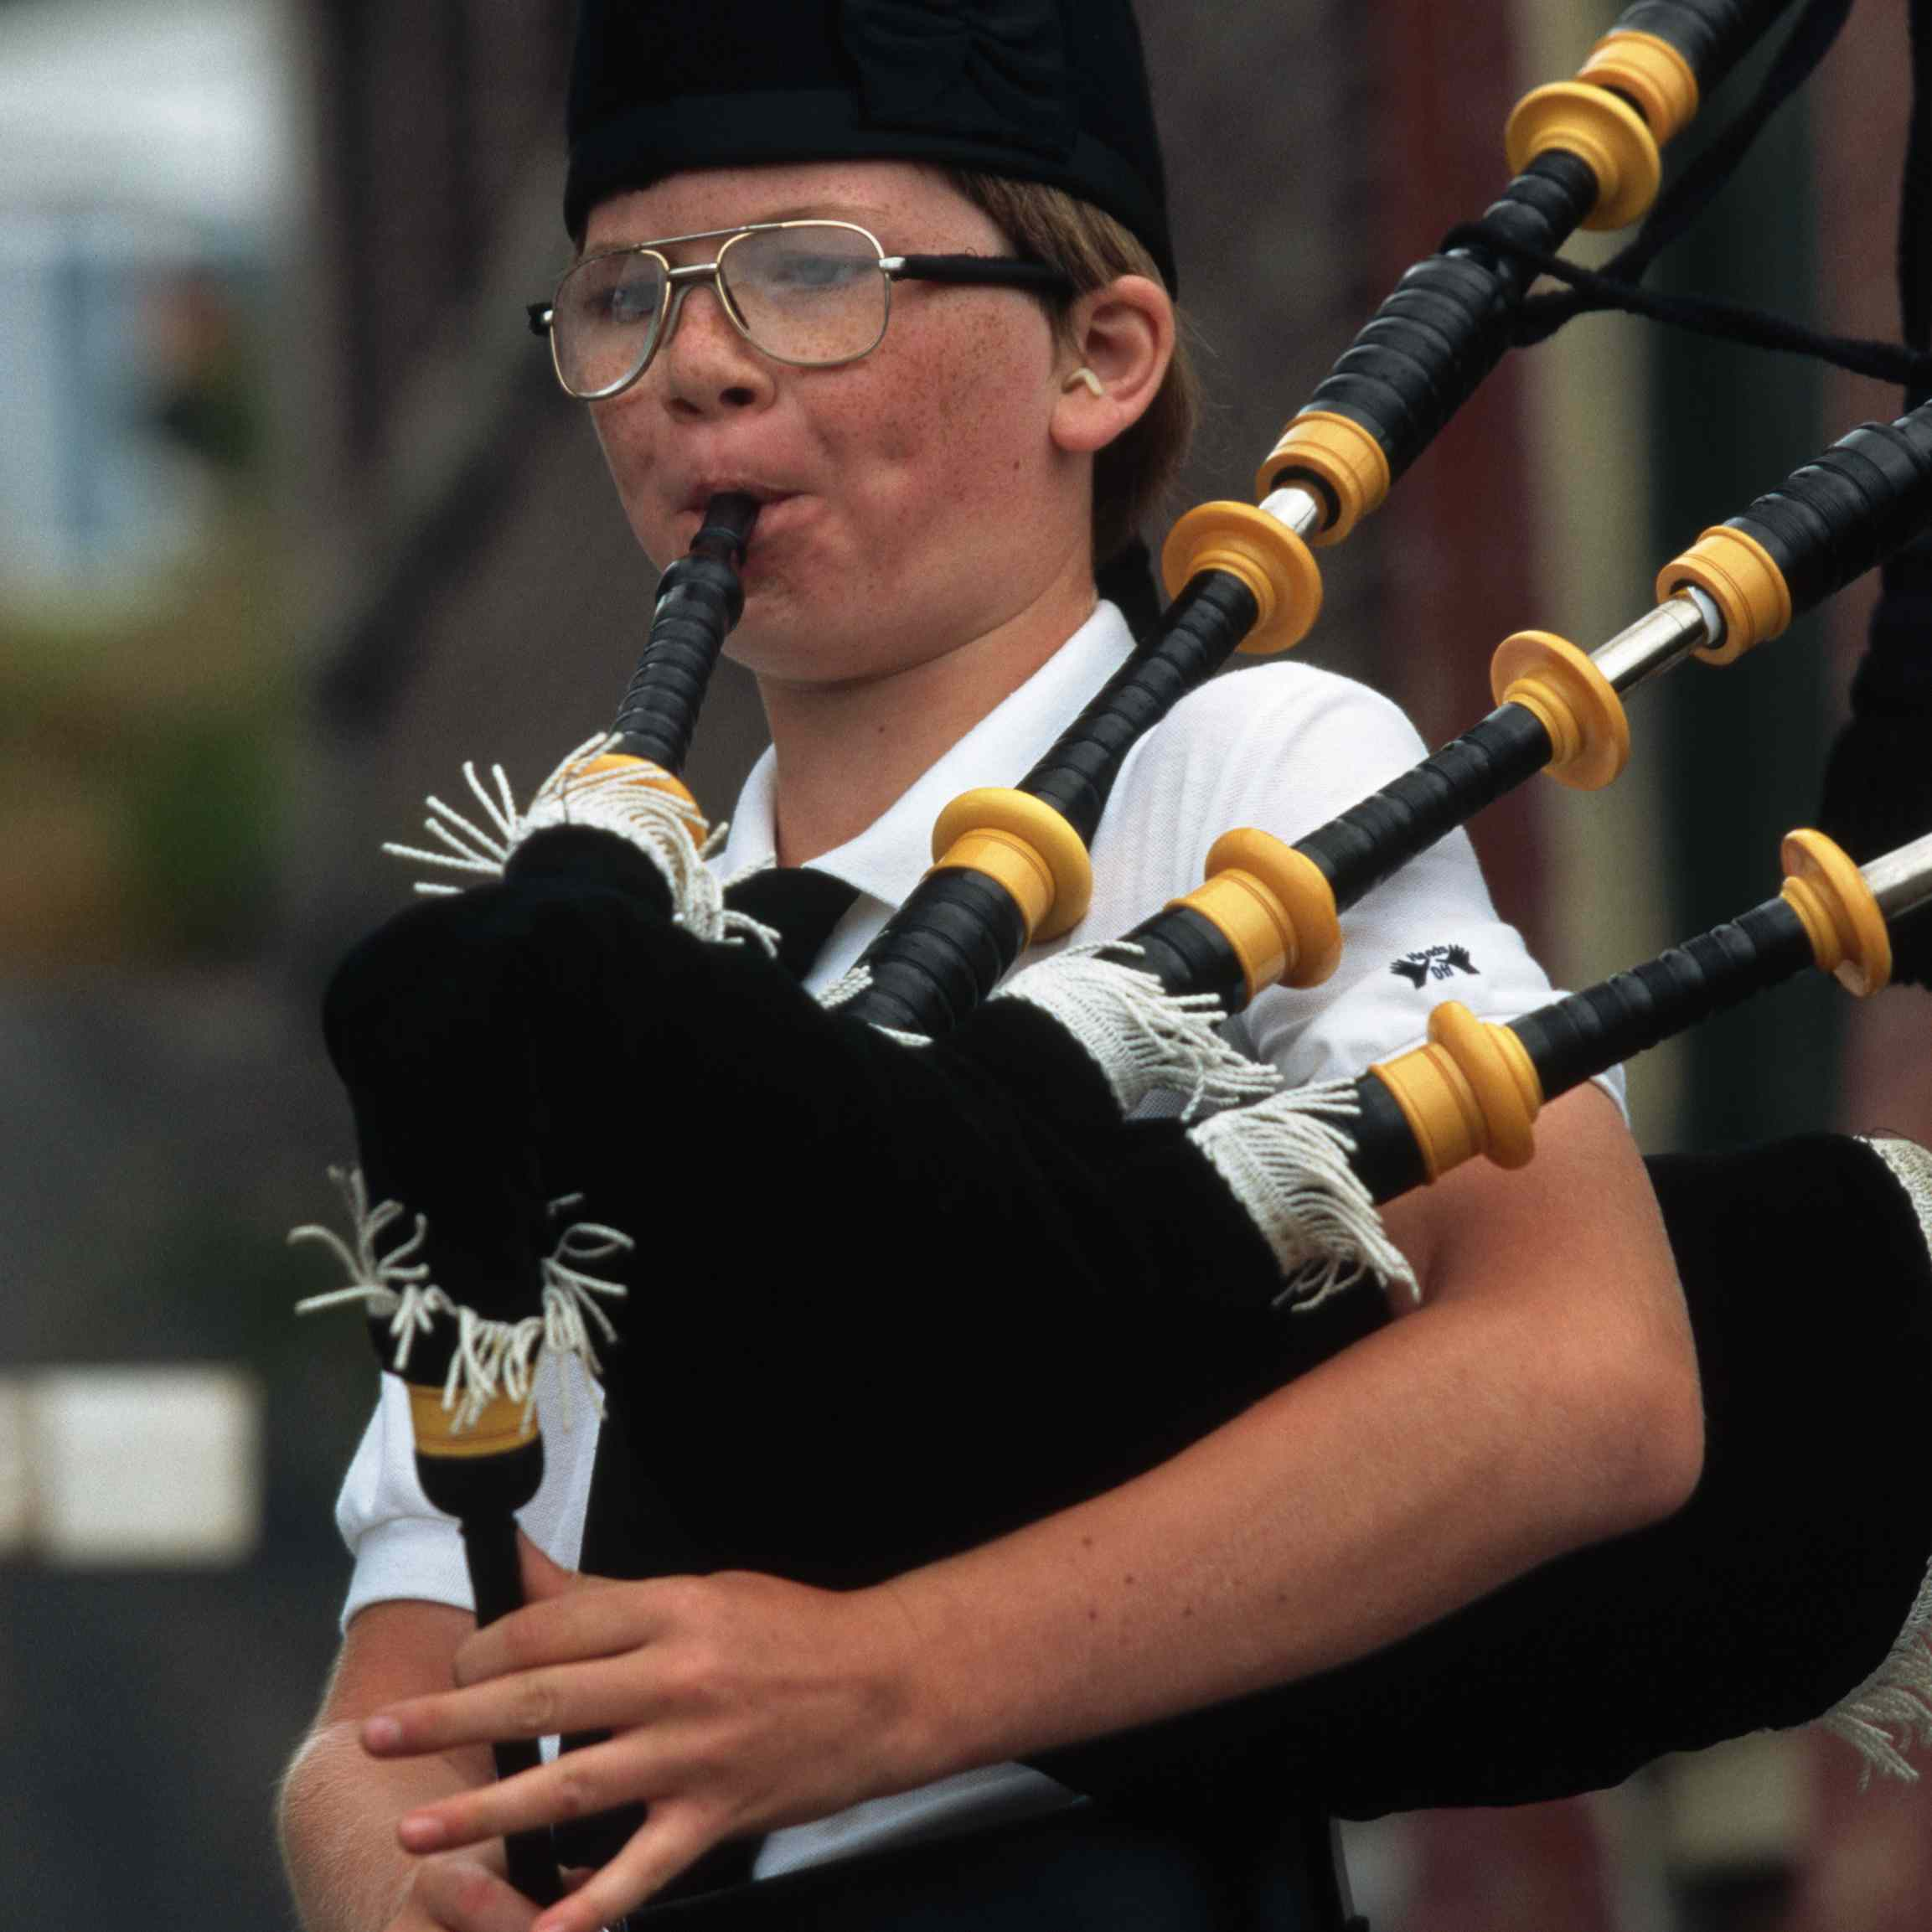 Girl Playing the Bagpipes